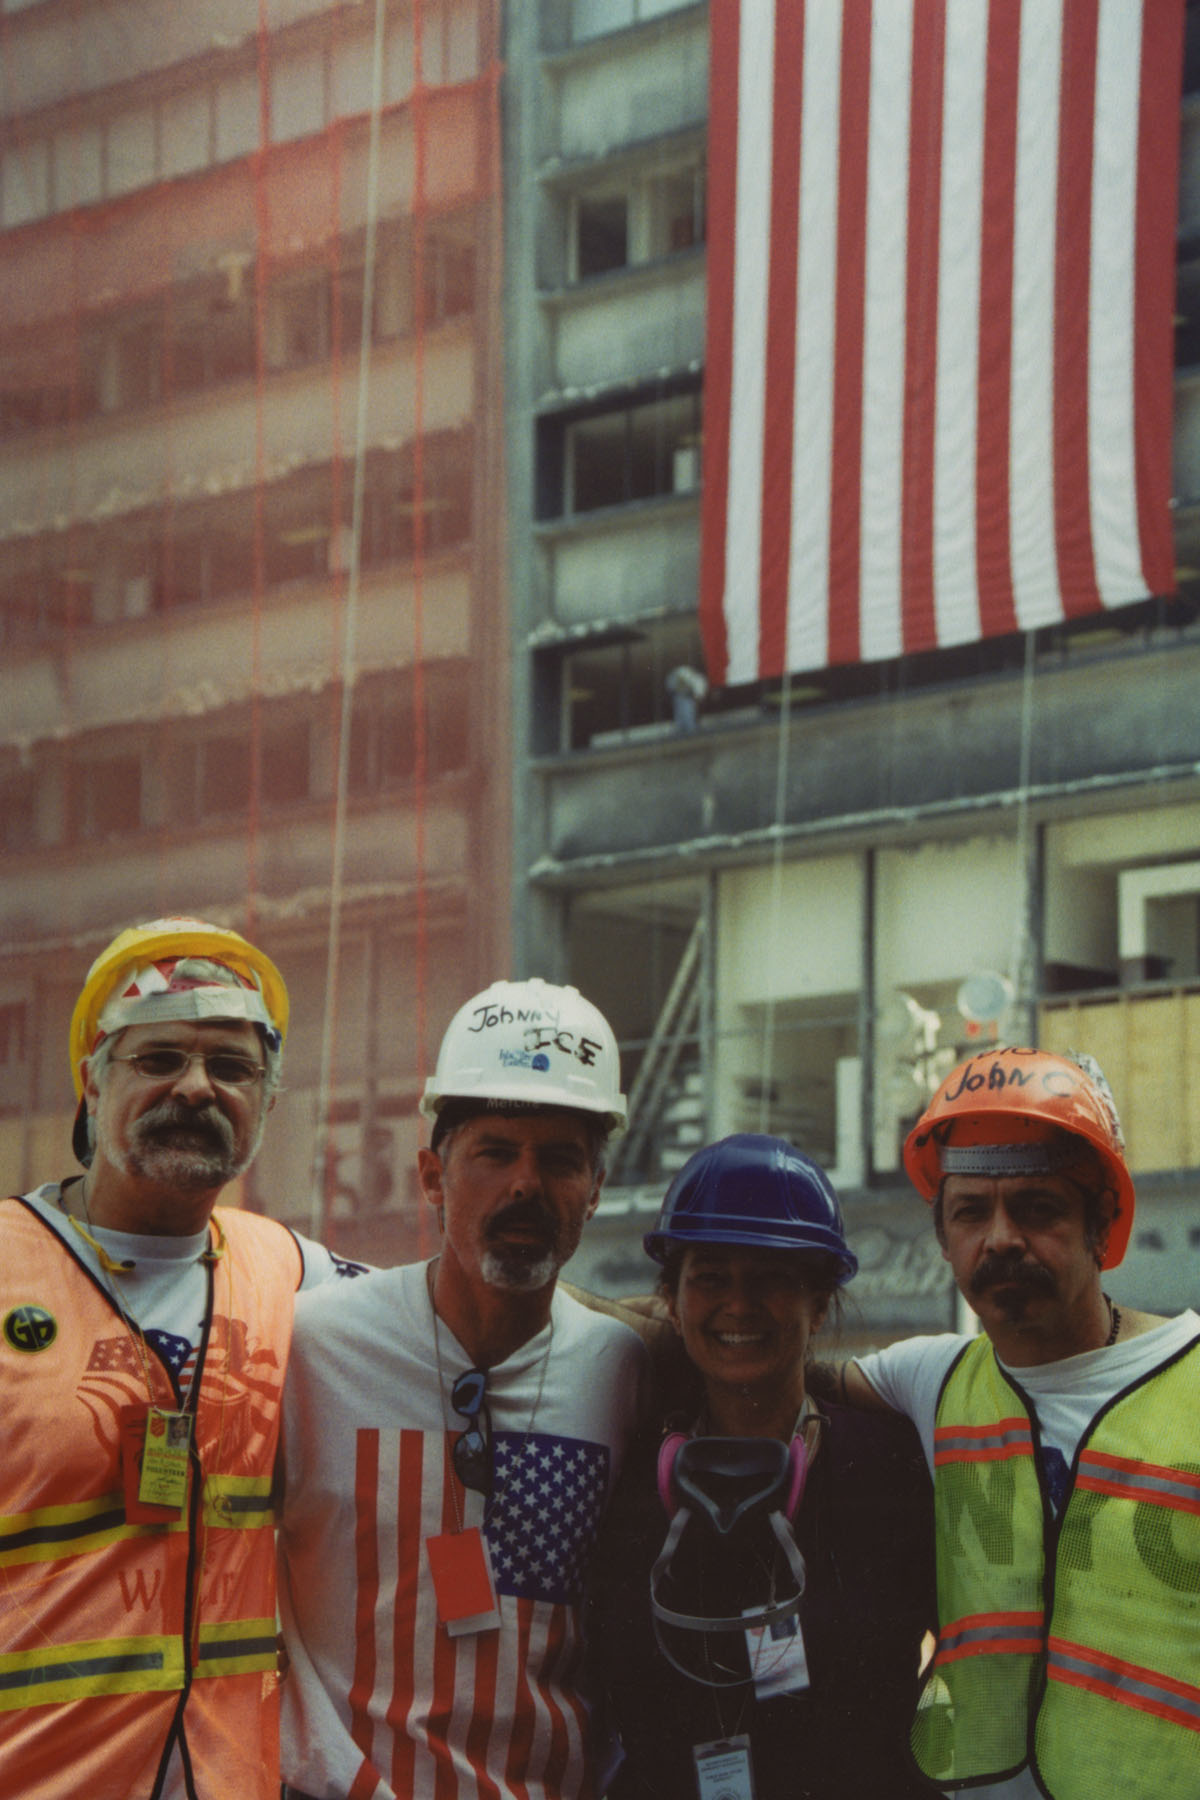 New Yorkers within Ground Zero